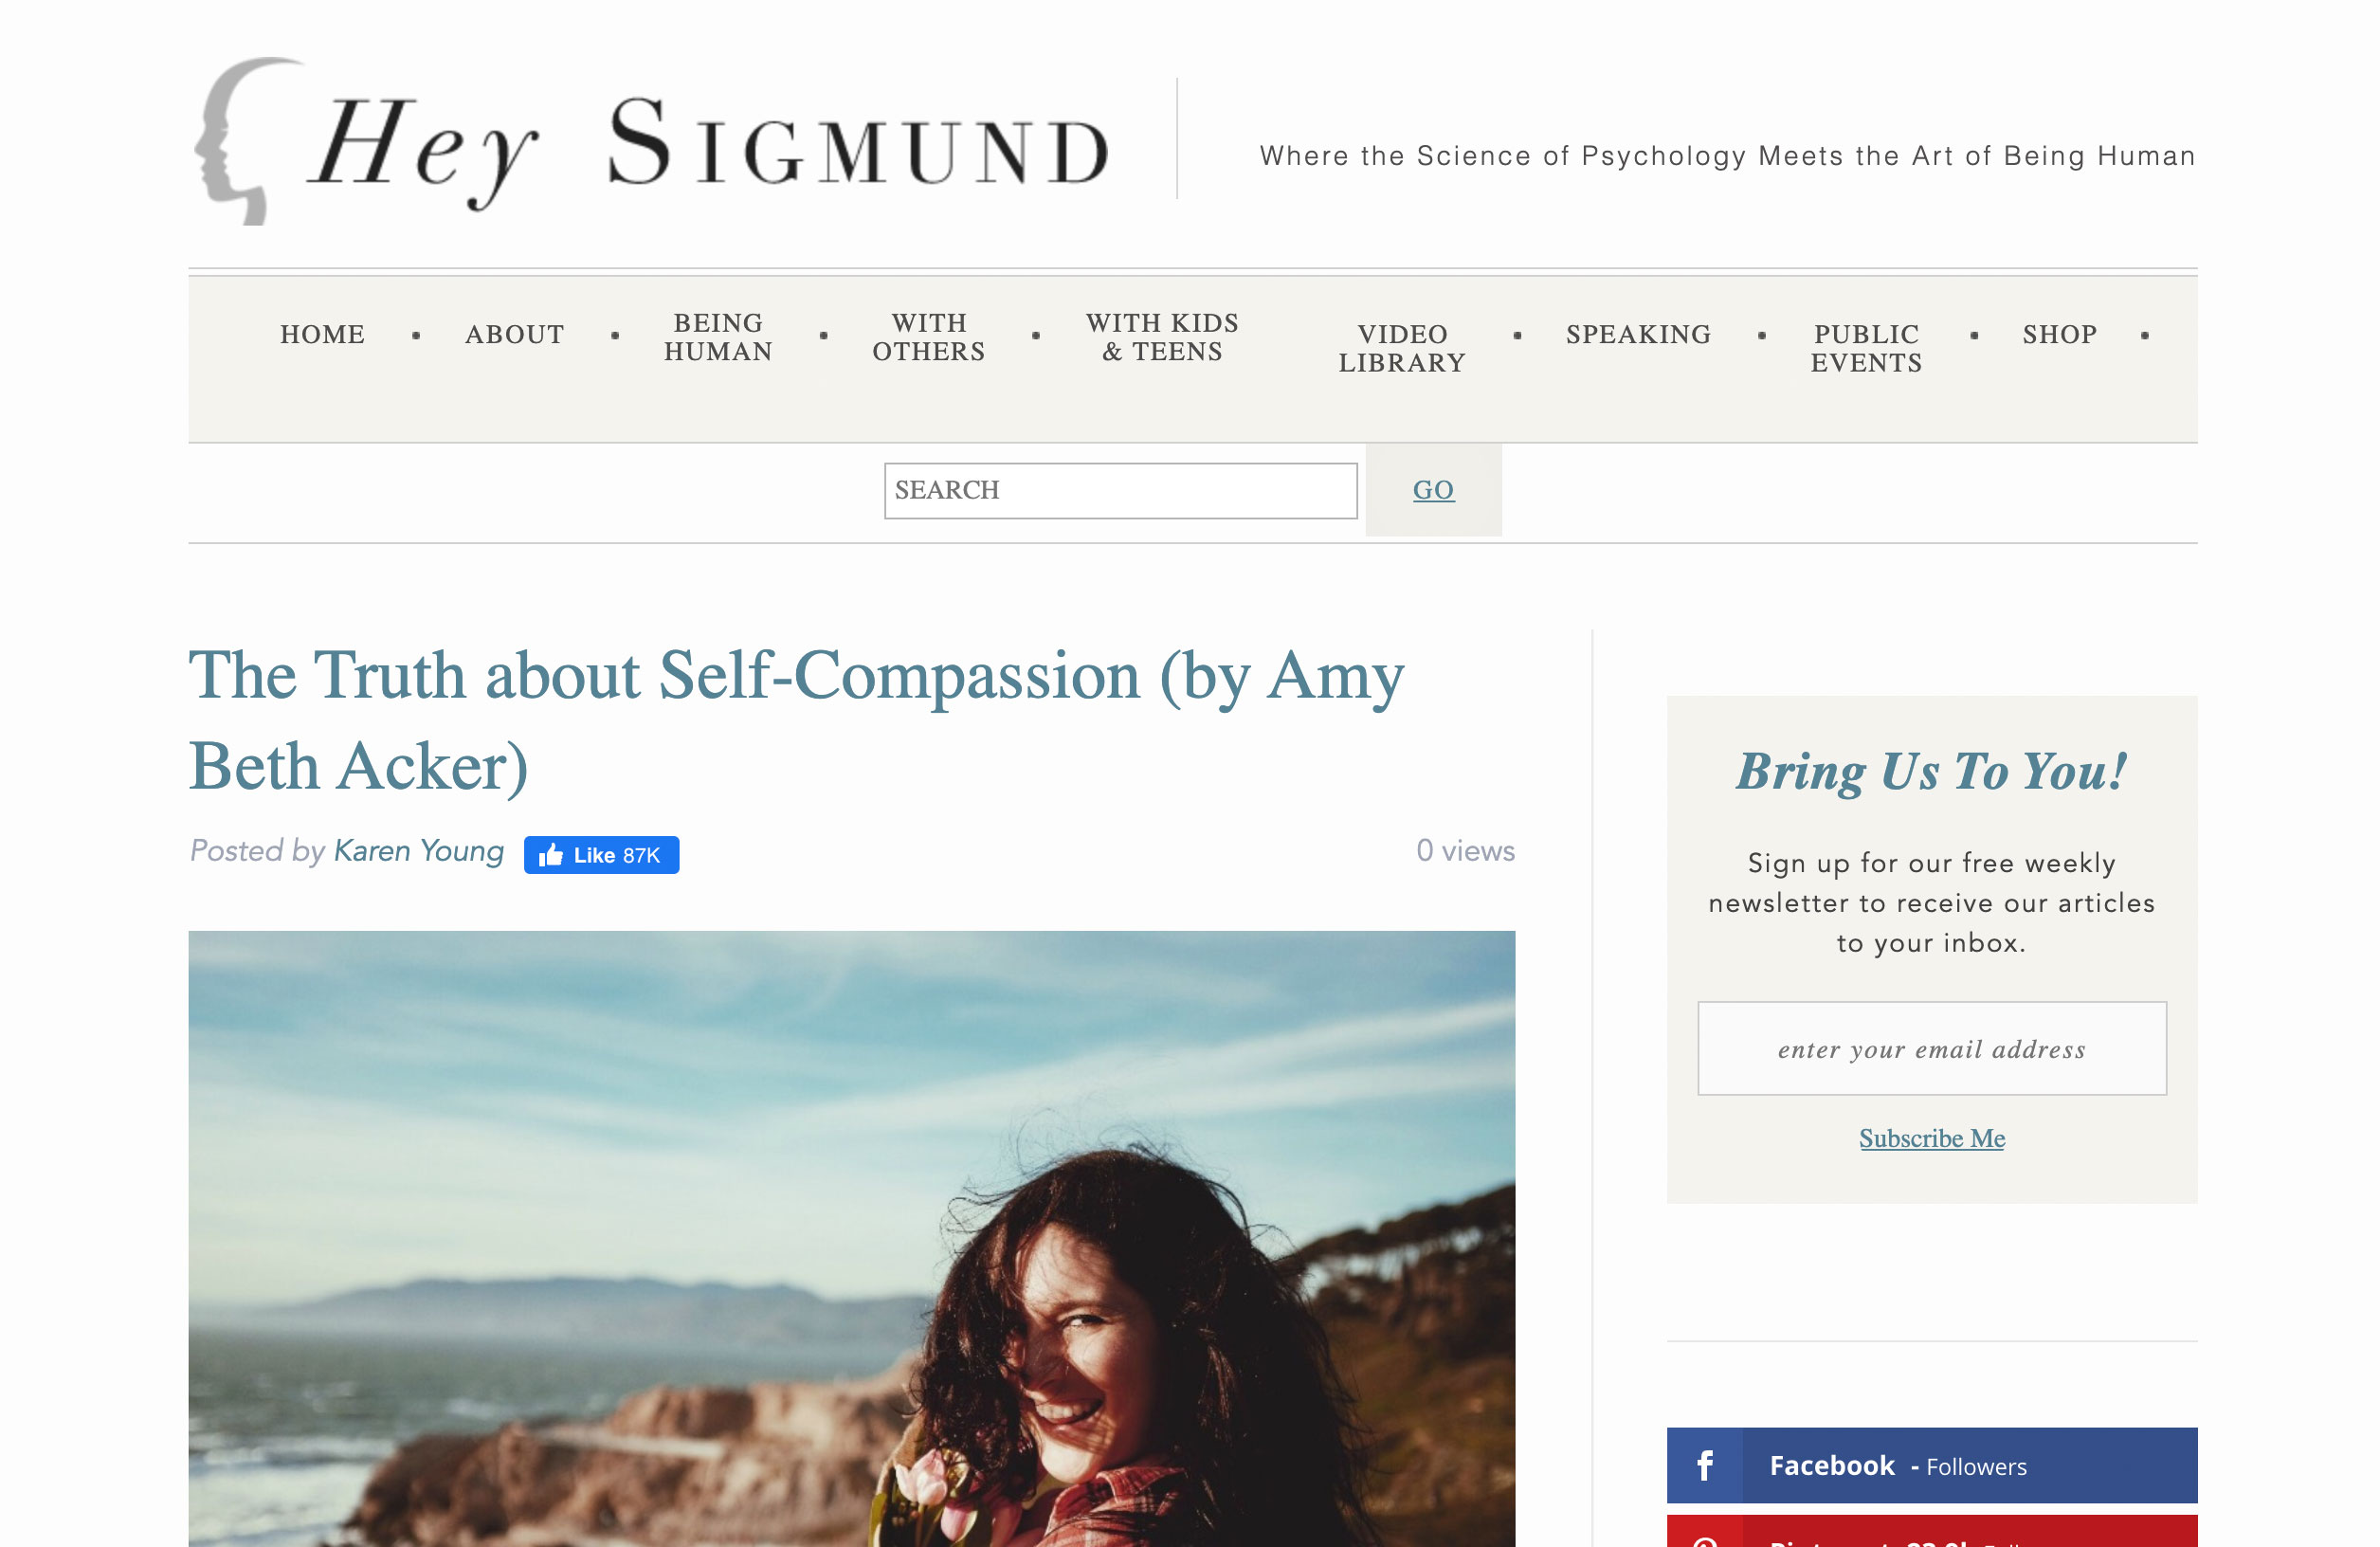 The Truth about Self-Compassion